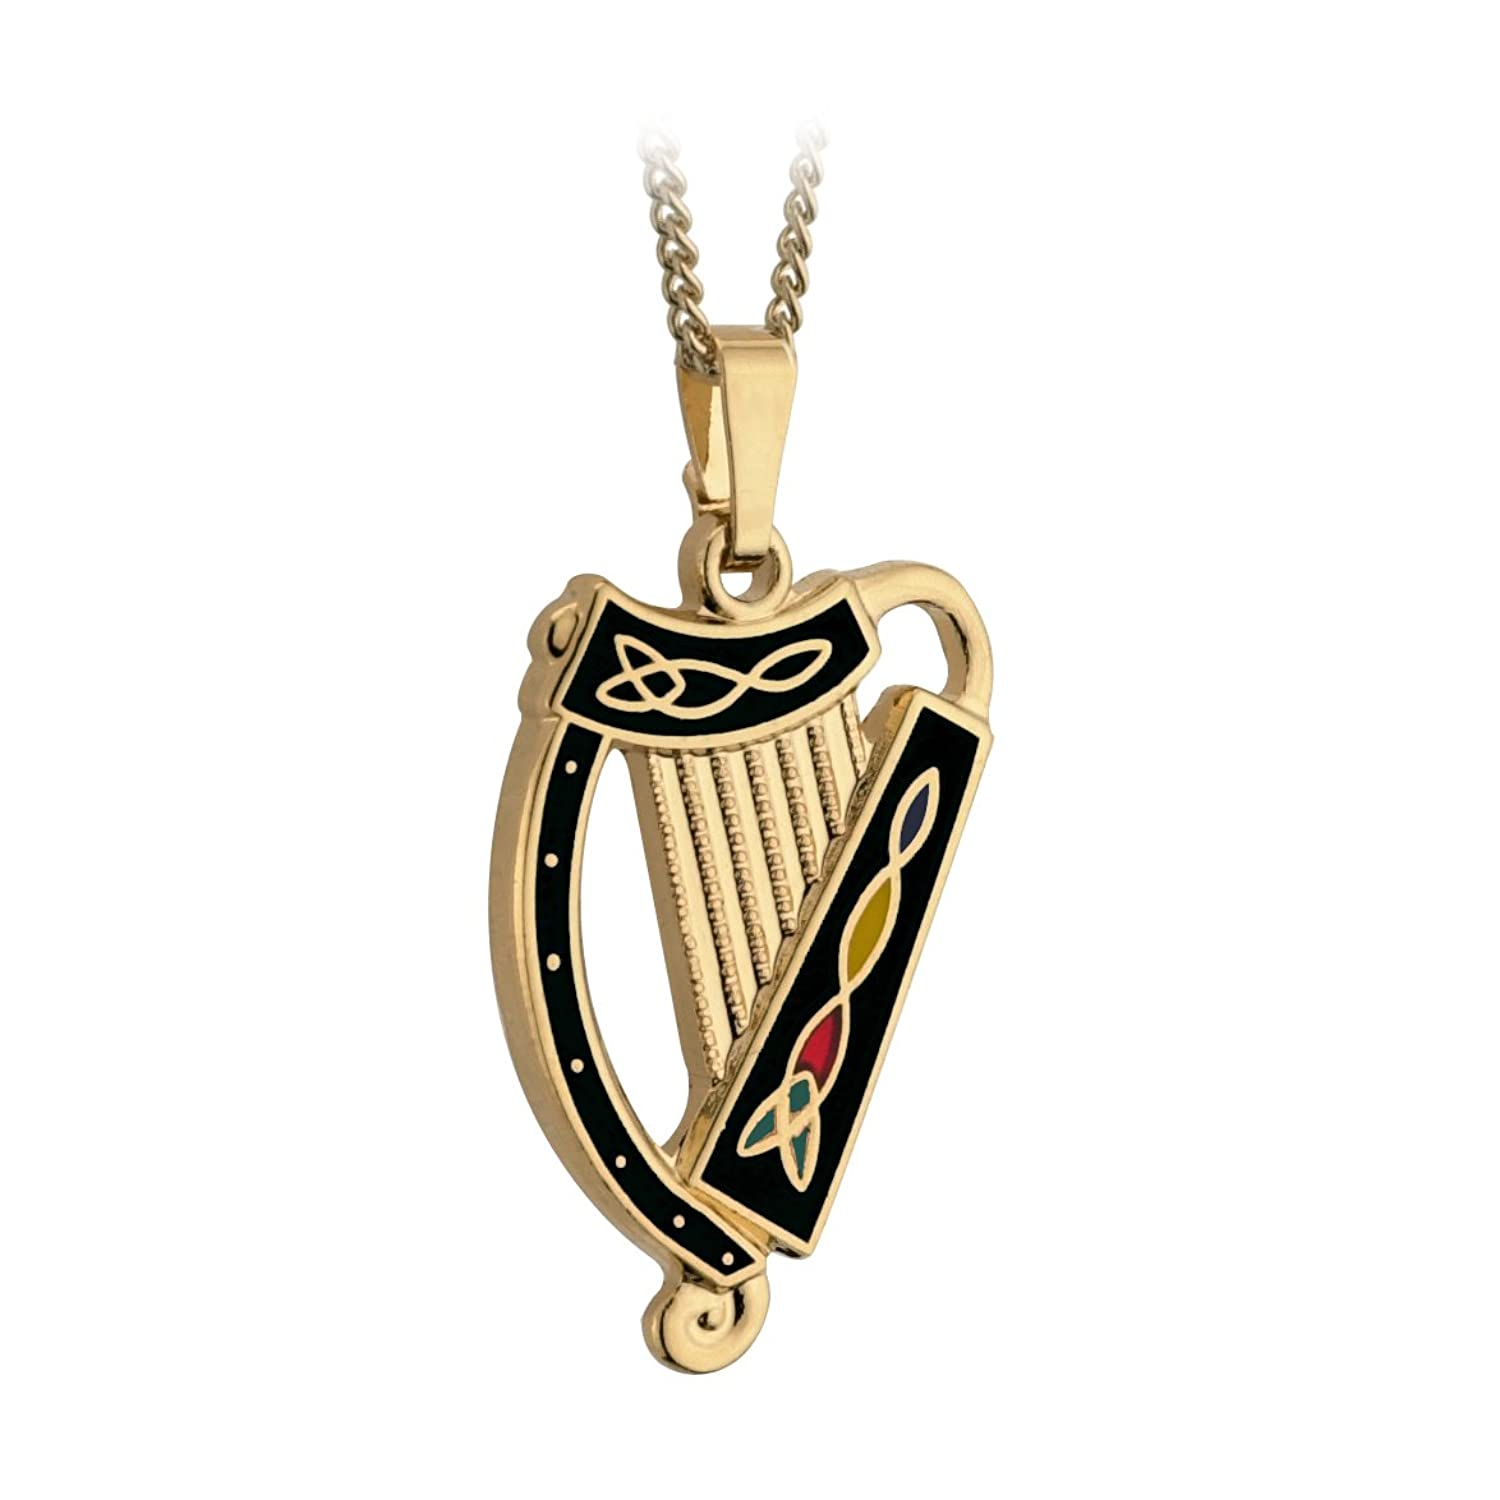 Irish Harp Pendant and Necklace Gold Plated with Black Made in Dublin, Ireland